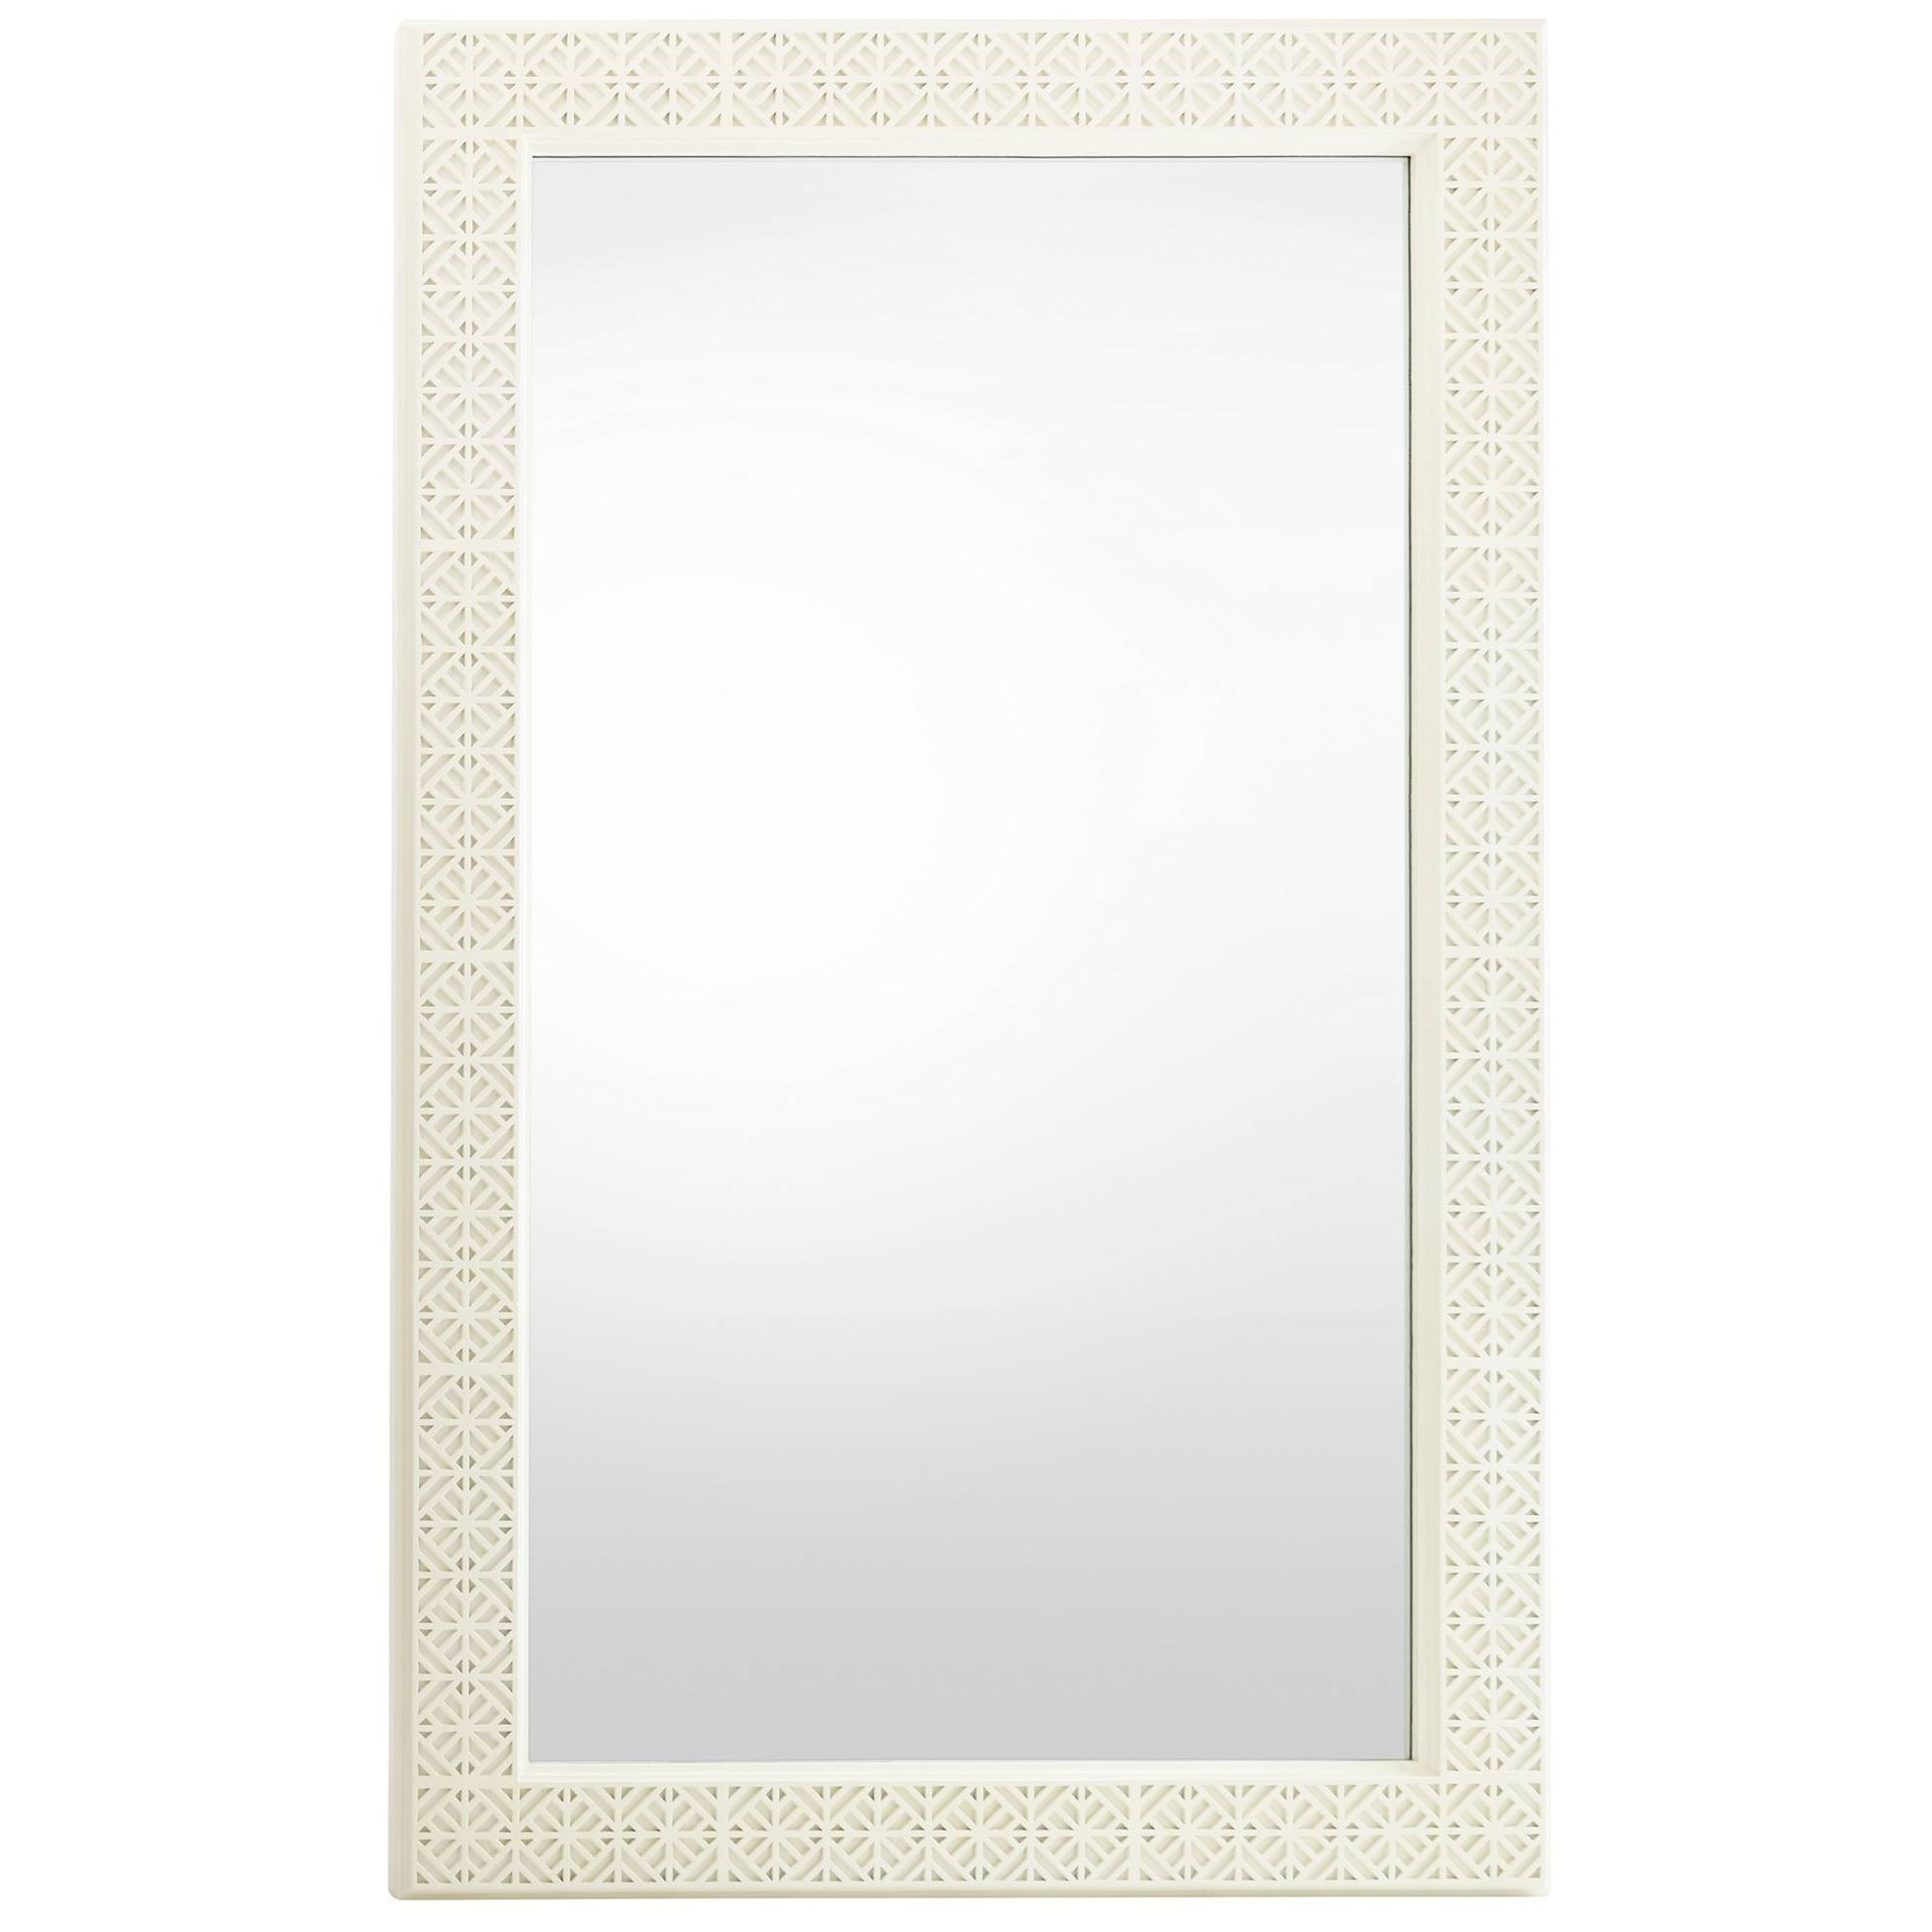 Stanley Furniture Coastal Living Oasis Catalina Floor Mirror - Item Number: 527-23-34